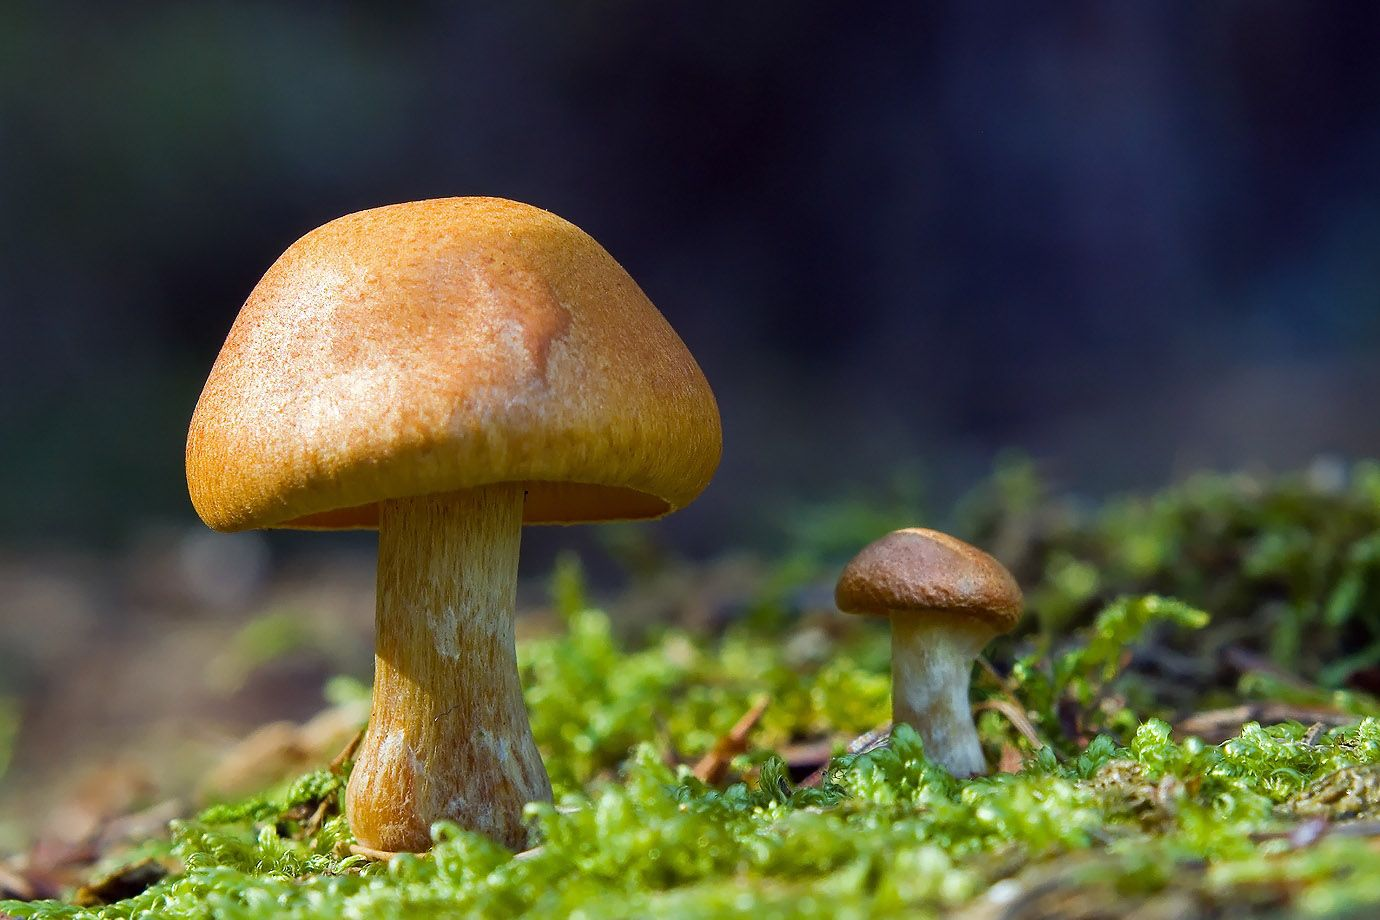 2 mushrooms in the moss